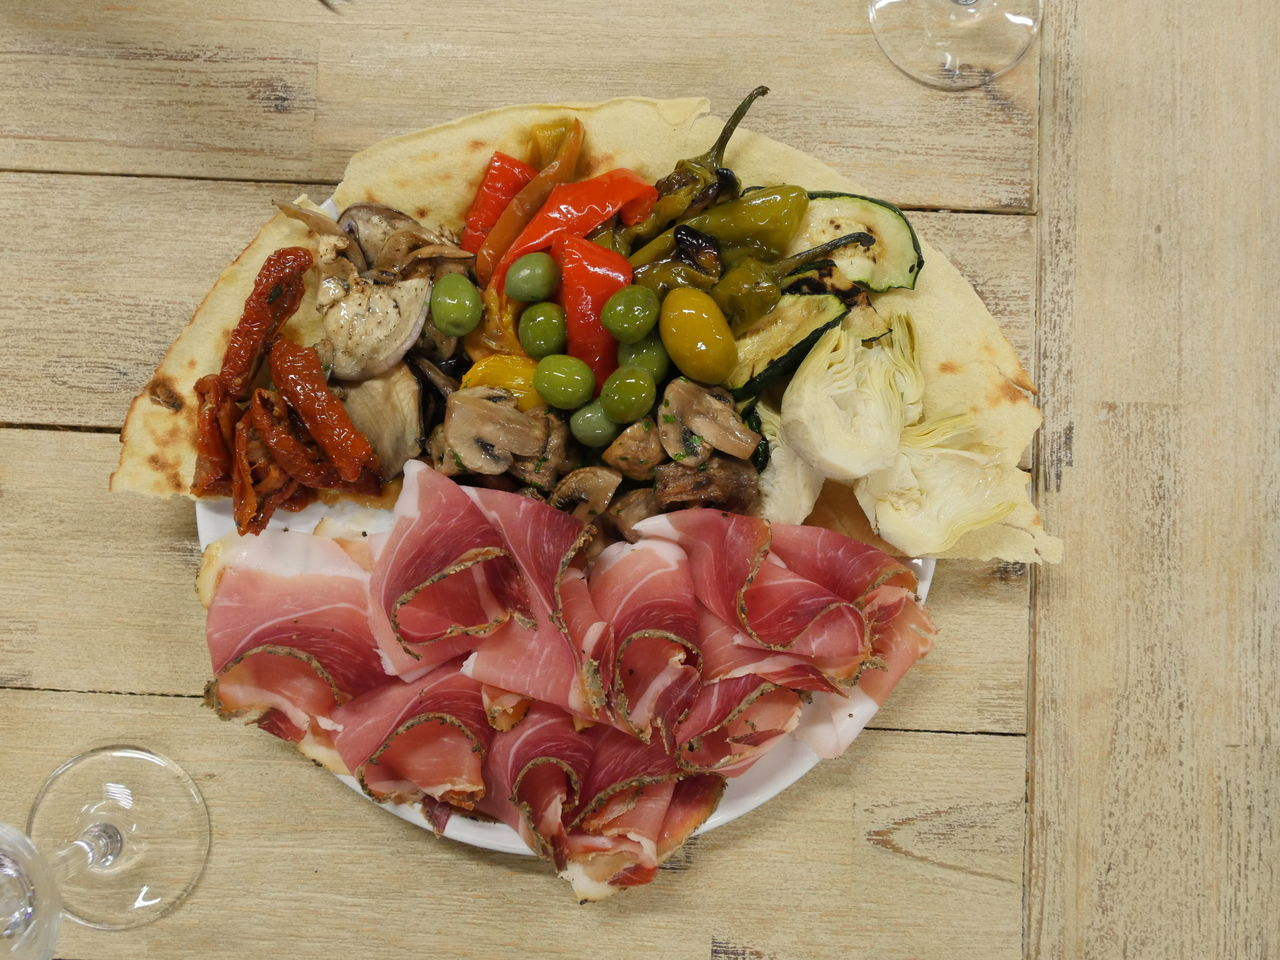 antipasti Antipasti Close-up Day Food Food And Drink Freshness Fruit Healthy Eating Indoors  No People Plate Ready-to-eat Table